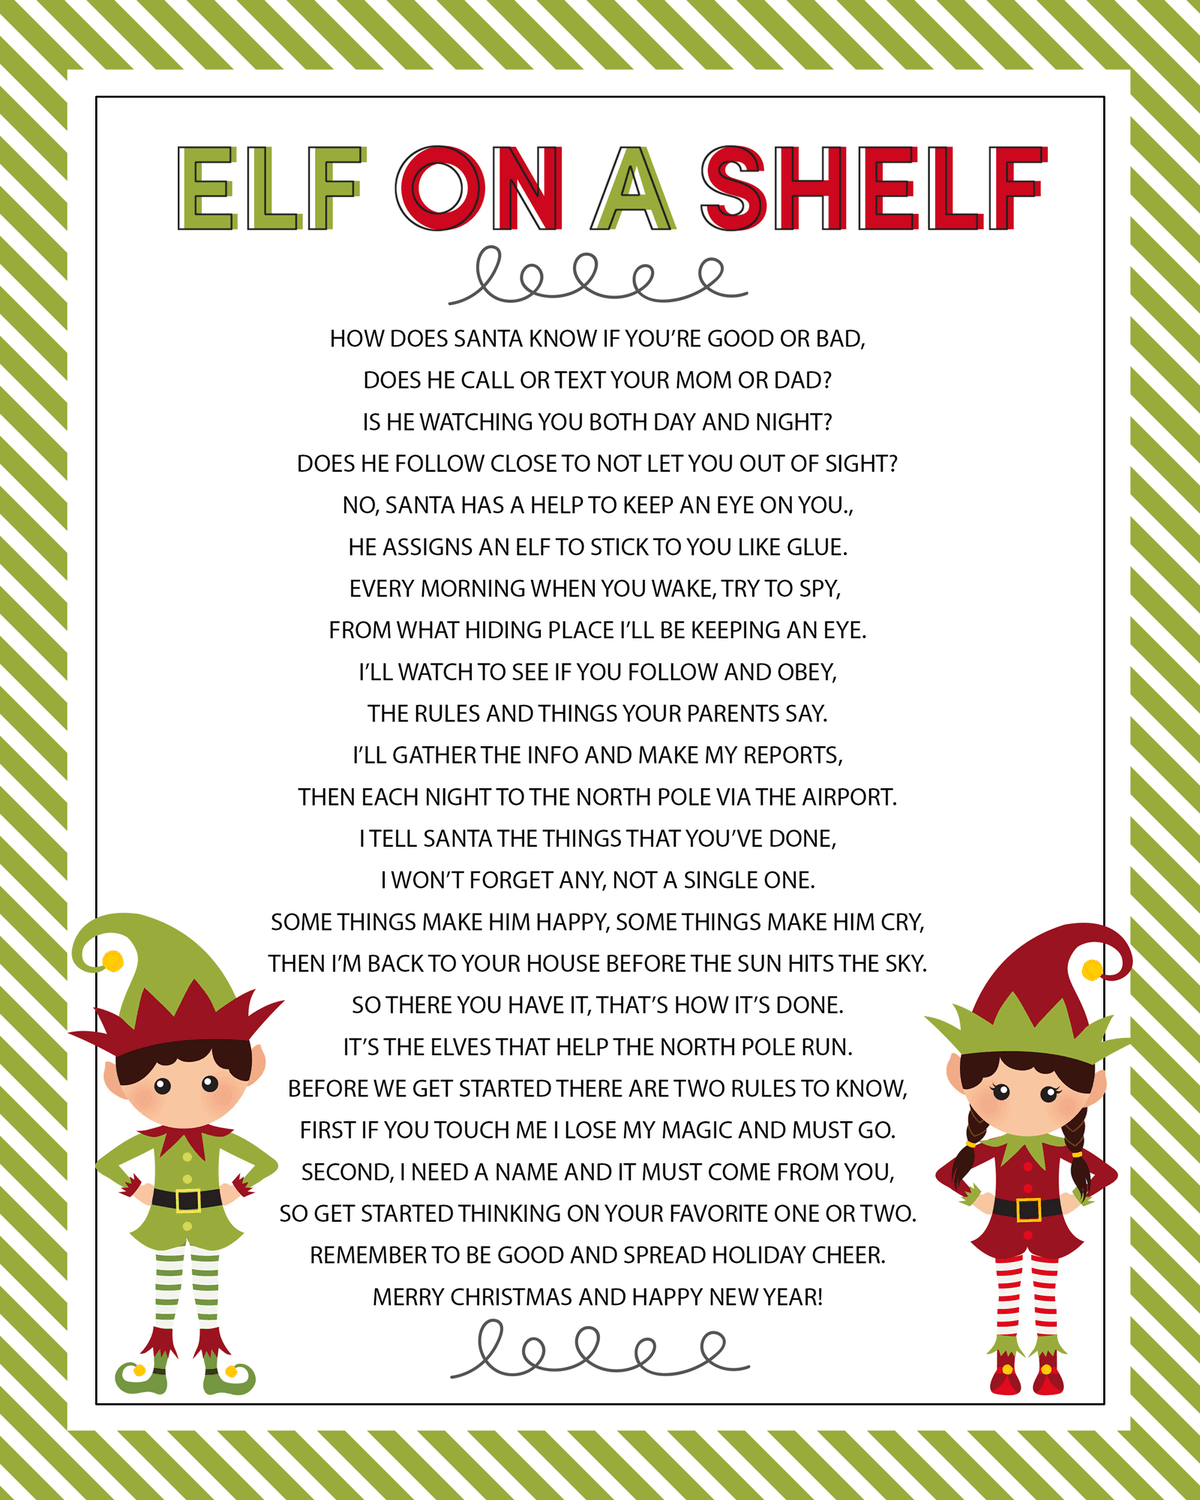 Elf on a Shelf - printable poem! So cute and perfect to use when your elf comes!